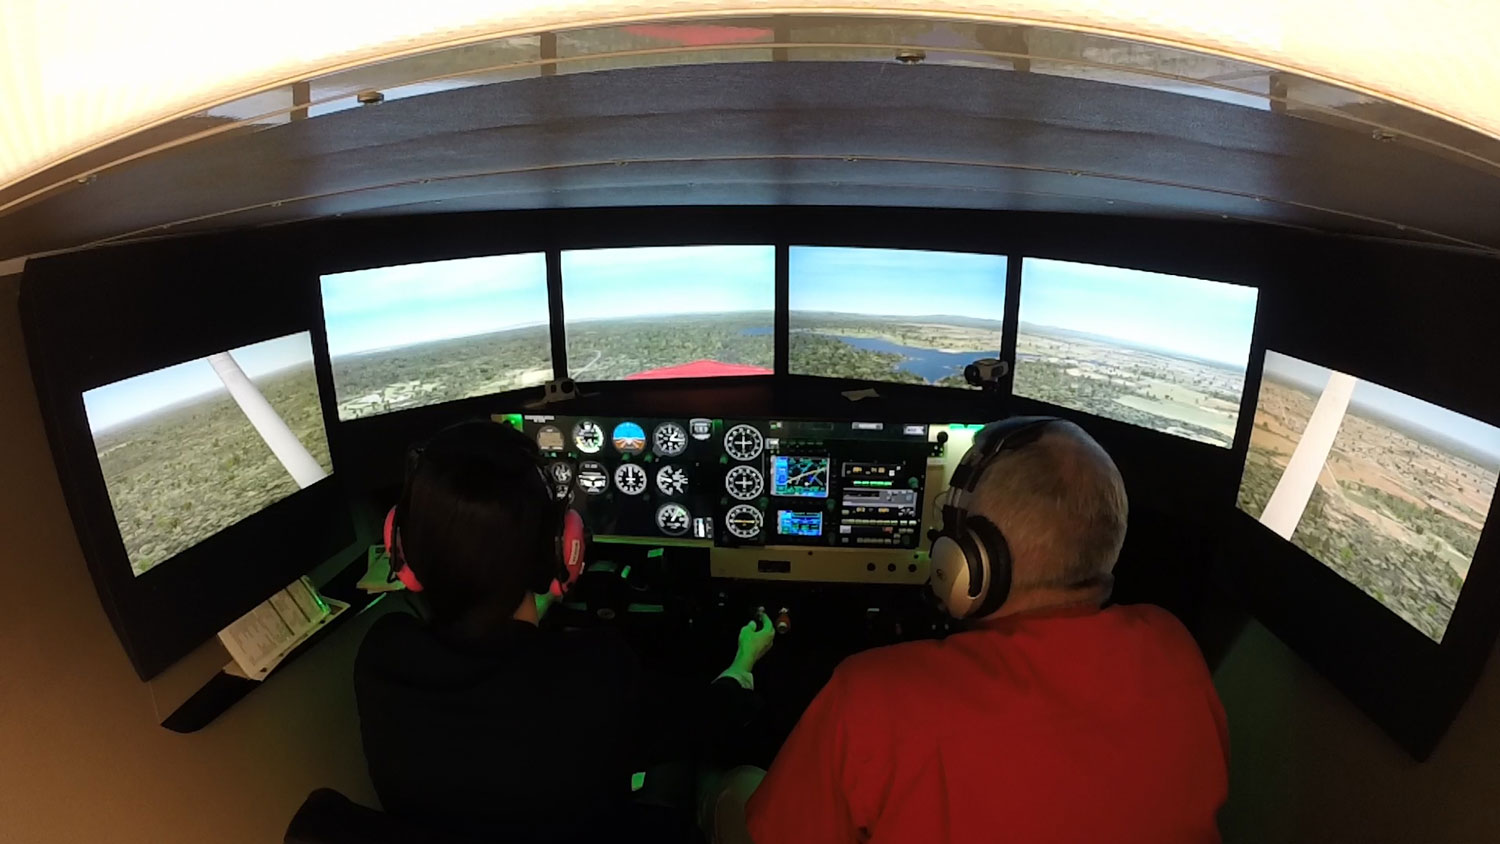 Here's What You Need to Know About the New Aviation Training Device Rules